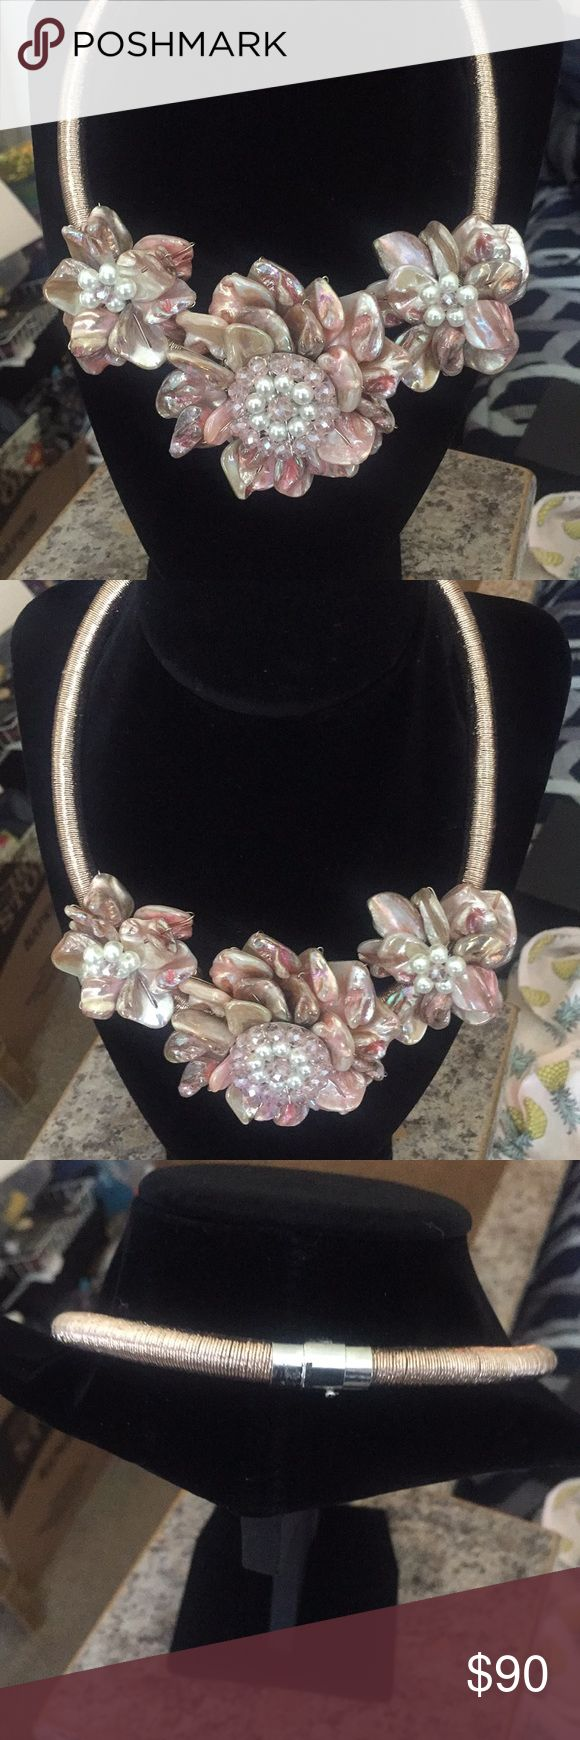 Pearl statement necklace. Never worn. Excellent condition. Contains freshwater pearls. This is a soft pinkish taupe color. Gorgeous. Jewelry Necklaces